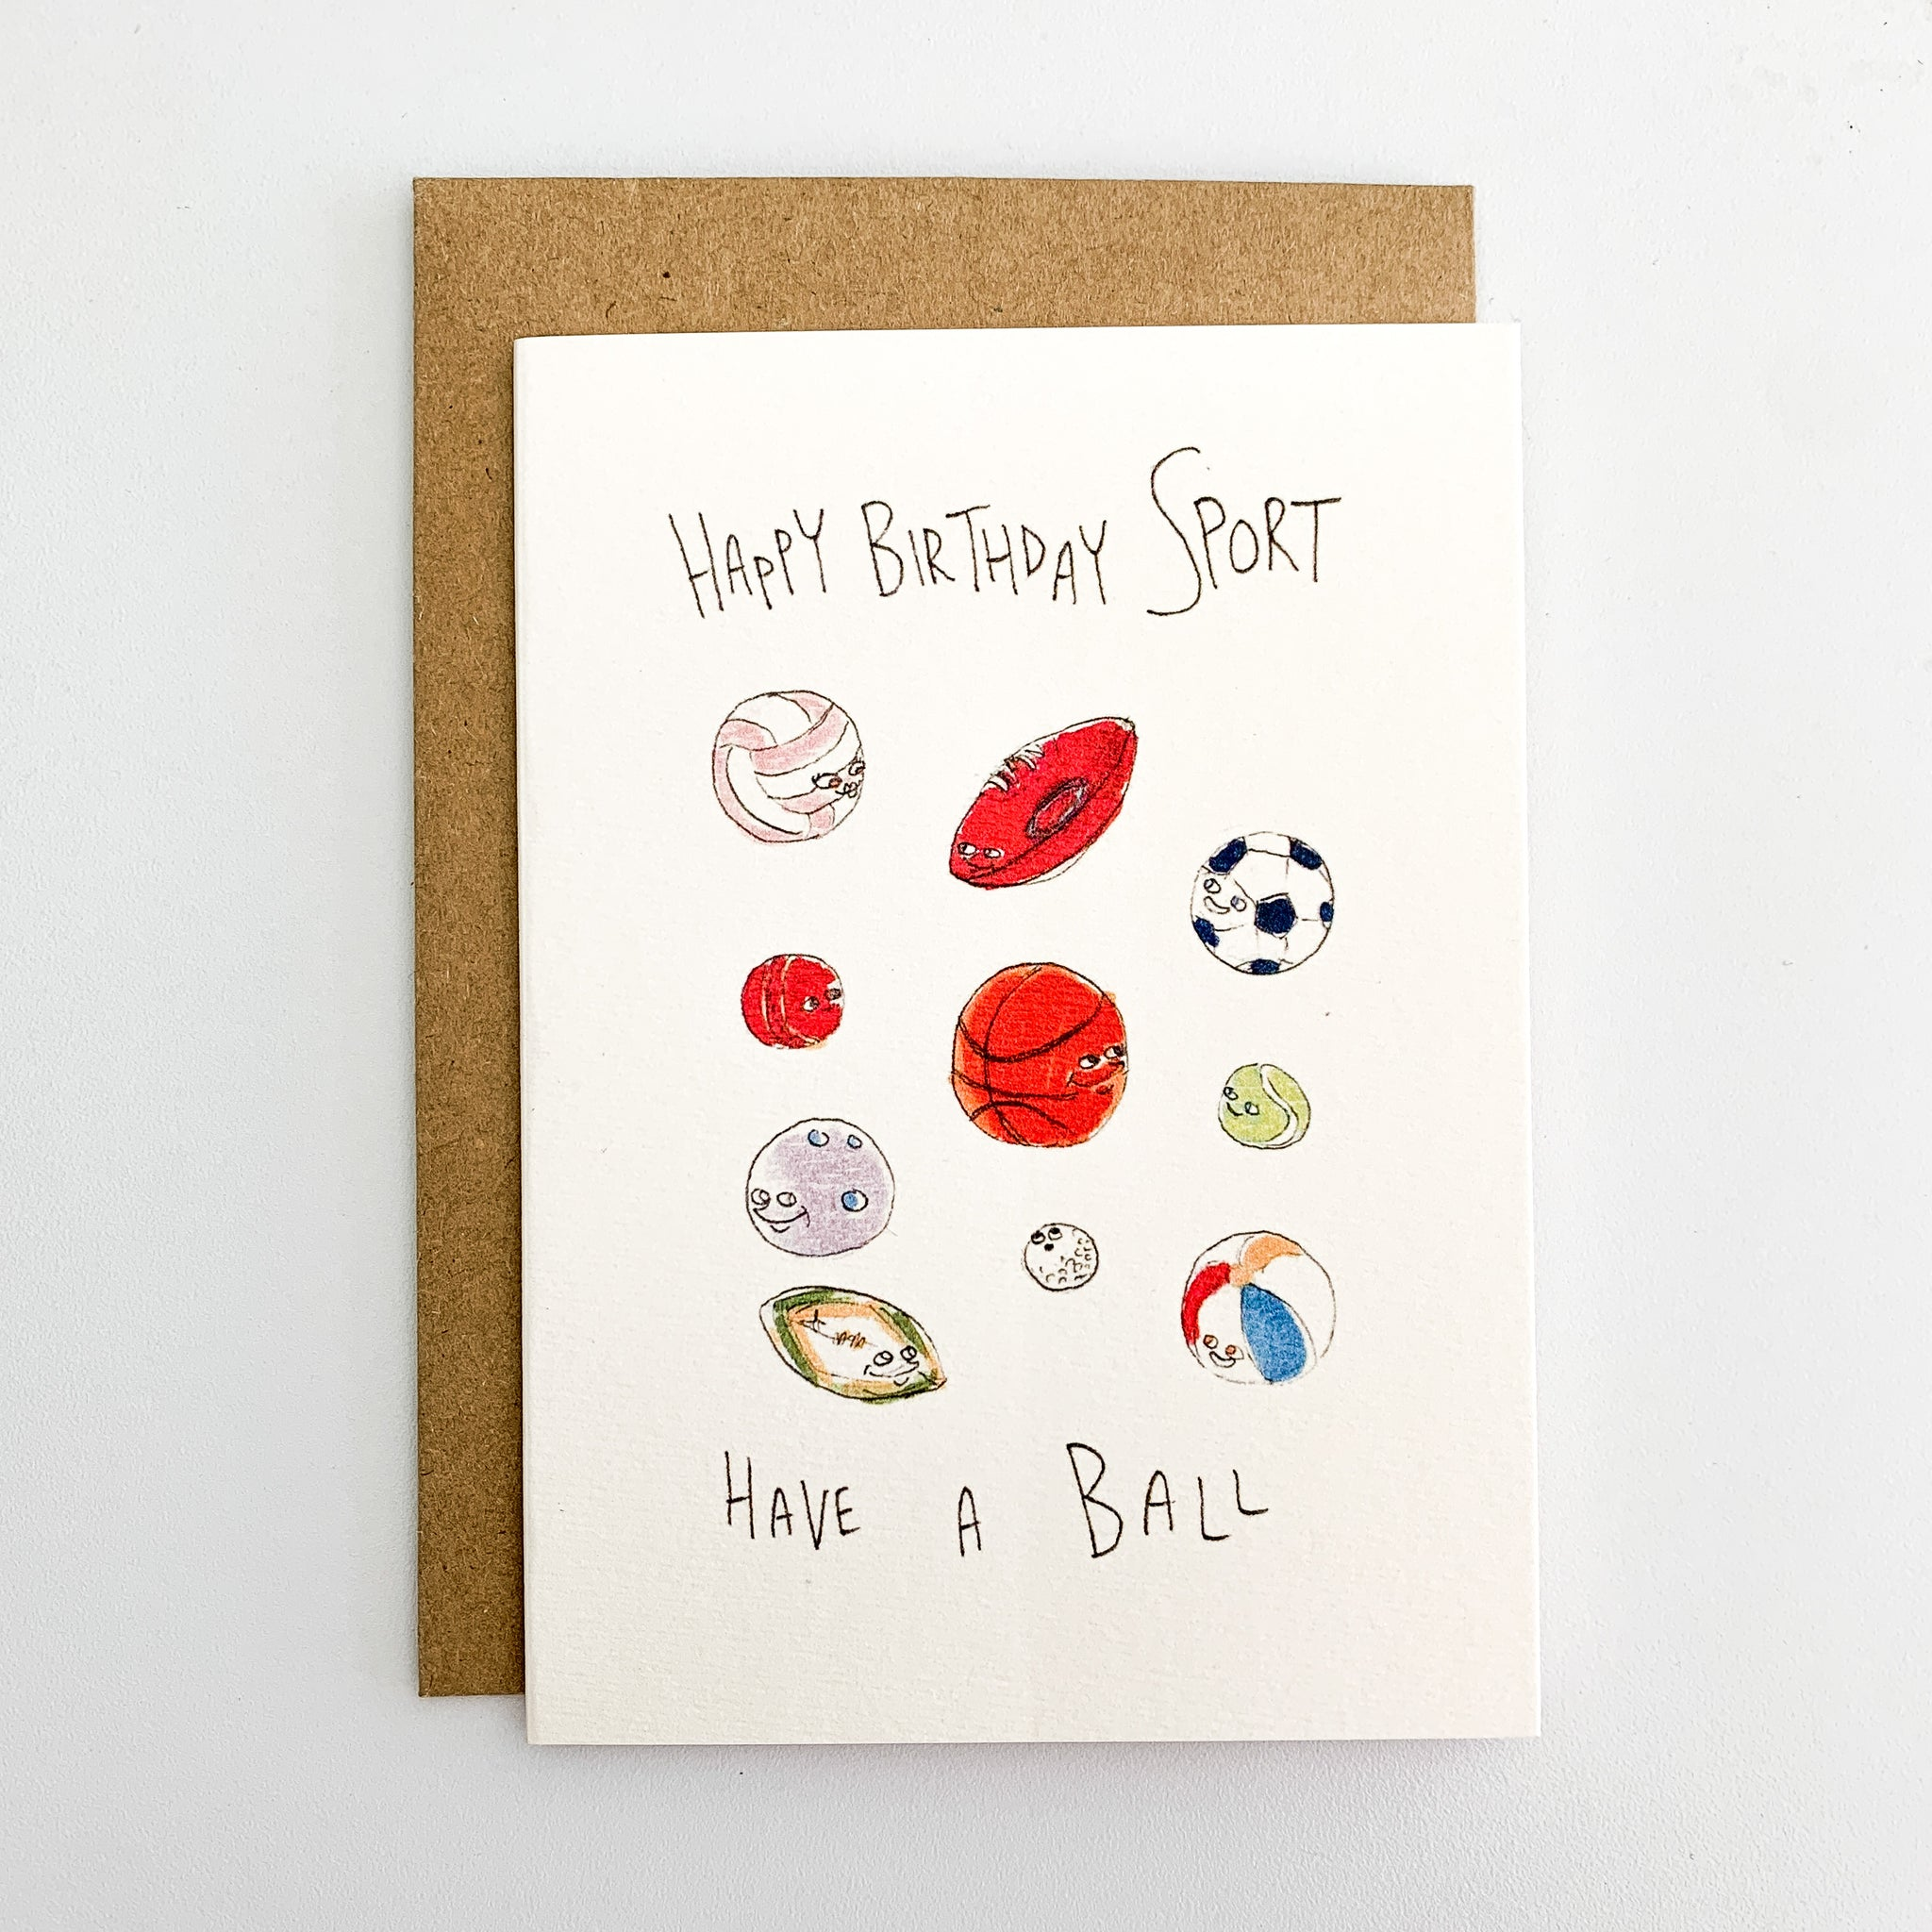 Happy Birthday Sport, Have A Ball - Well Drawn